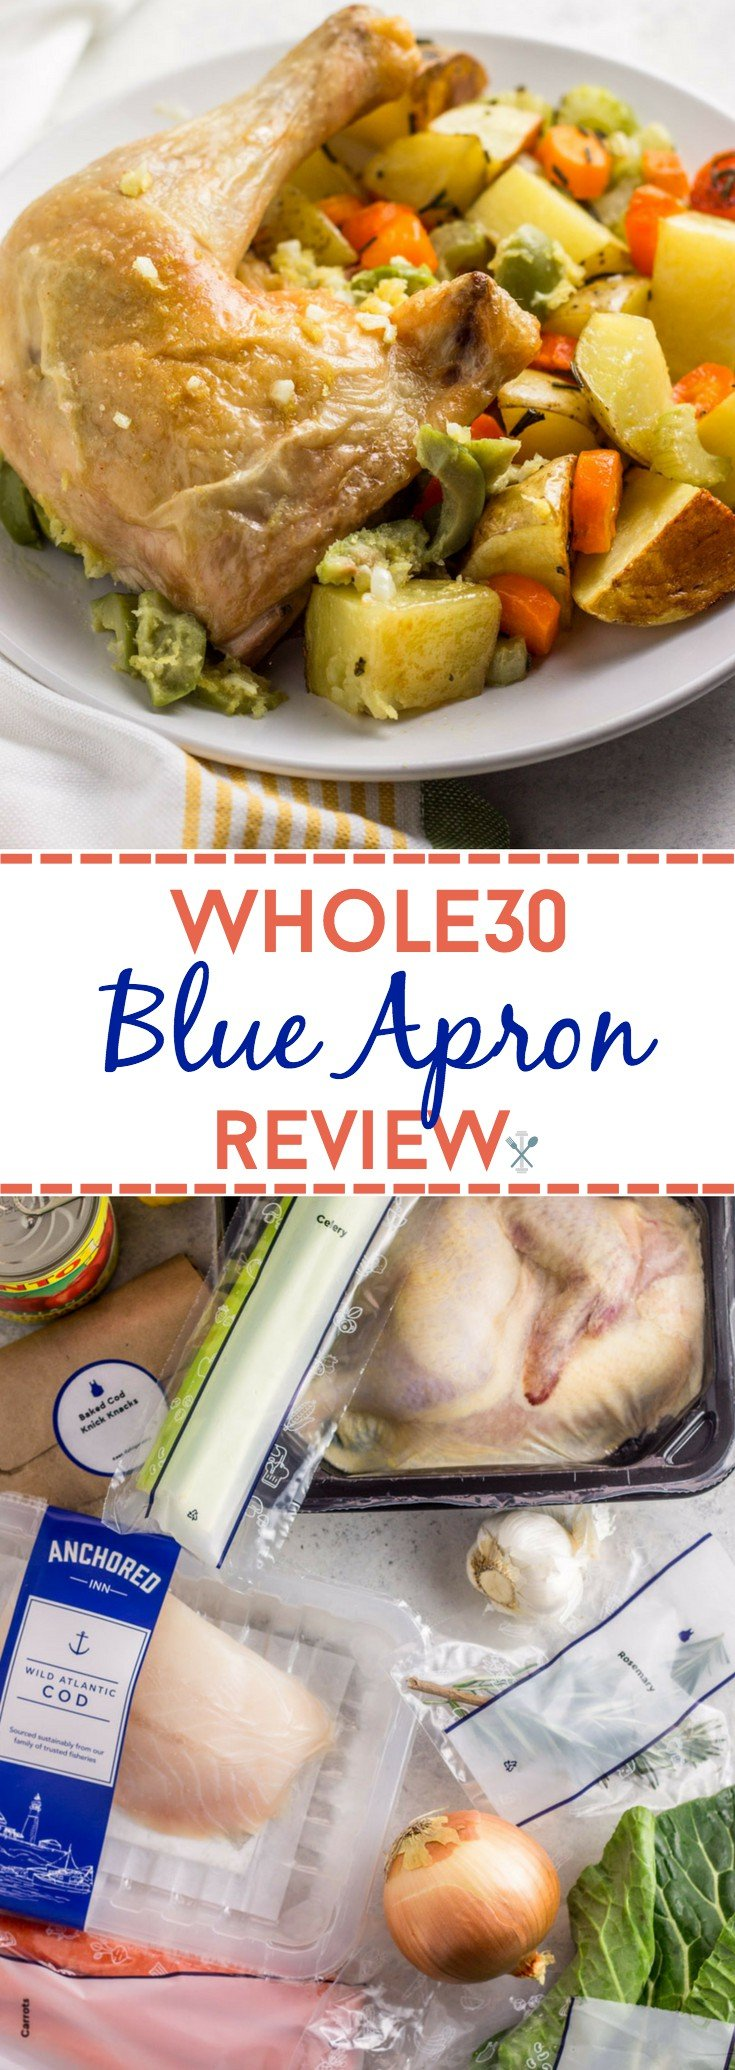 This Whole30 Blue Apron review details my experience with Blue Apron, making Whole30 easier and stress free. Delicious meals straight to your door!